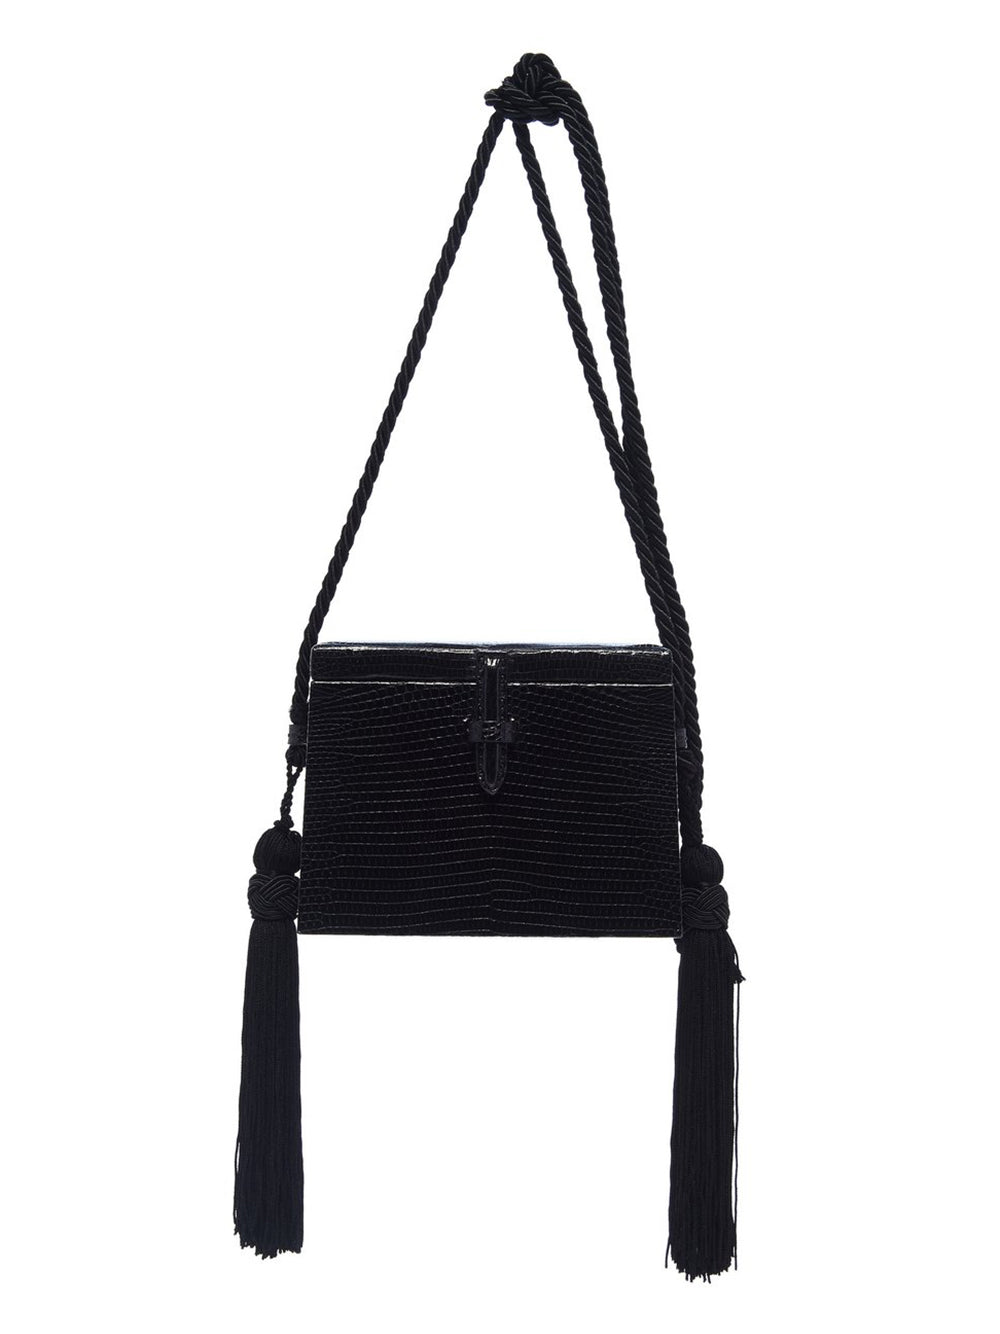 Mini Square Lizard Trunk Crossbody Bag Front